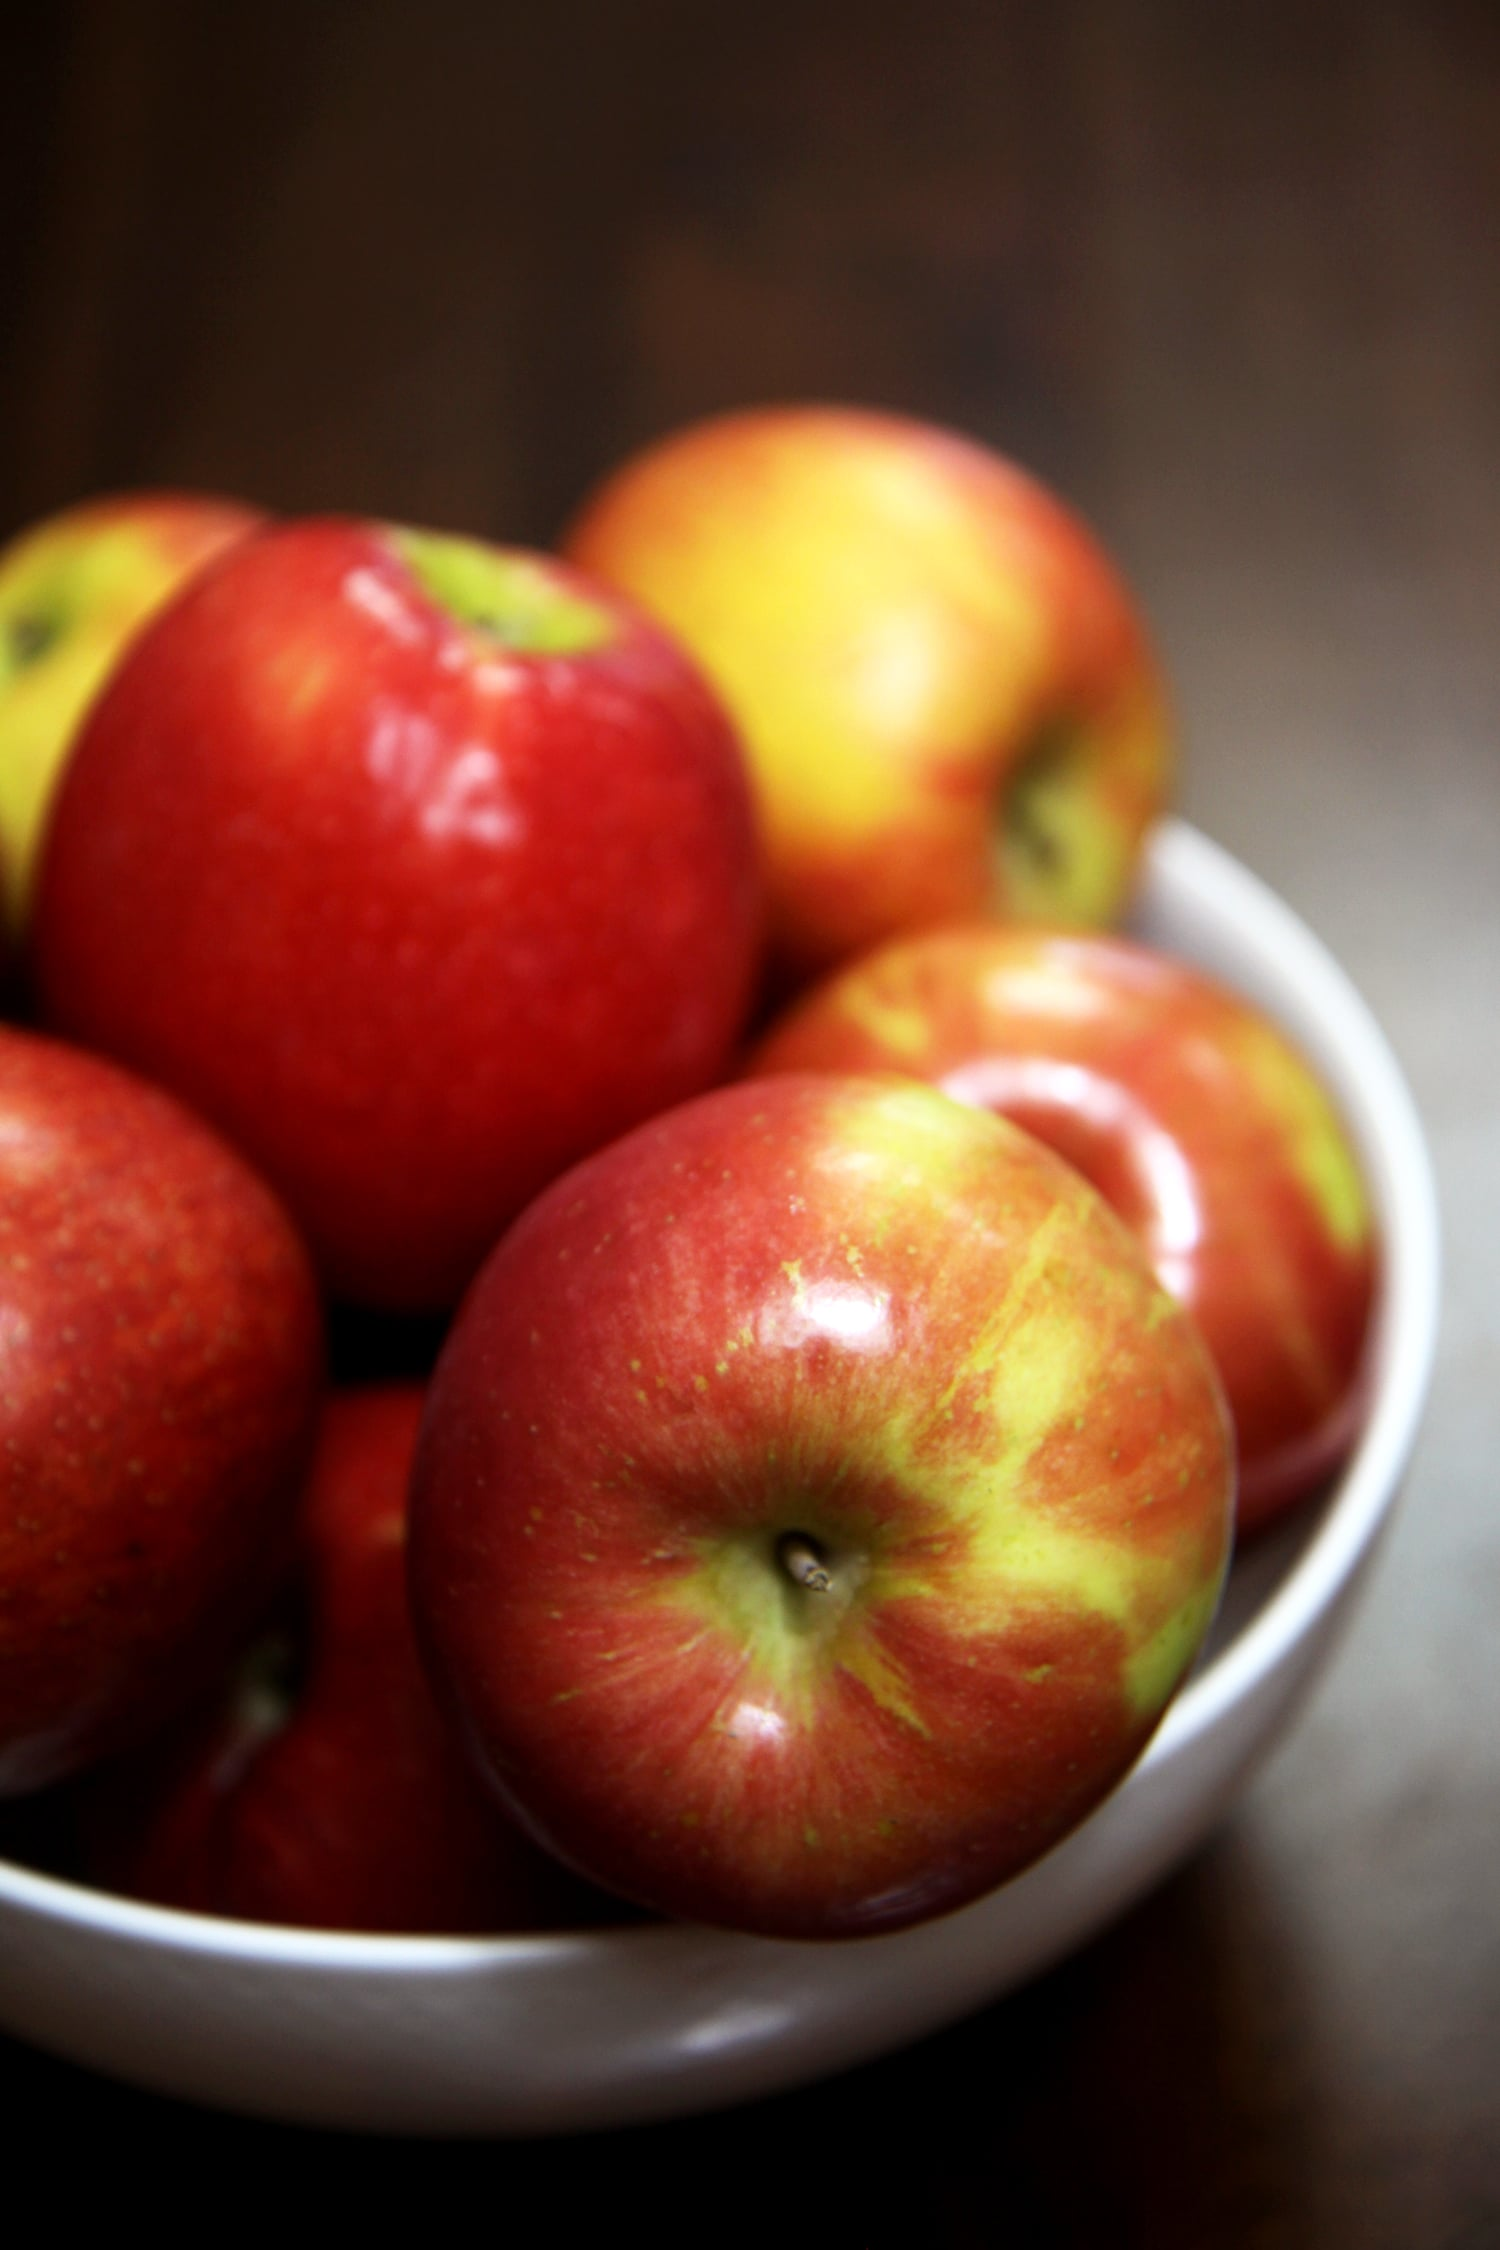 I Ate 1 Apple Every Day For 2 Weeks, and This Is What Happened (in the Bathroom)